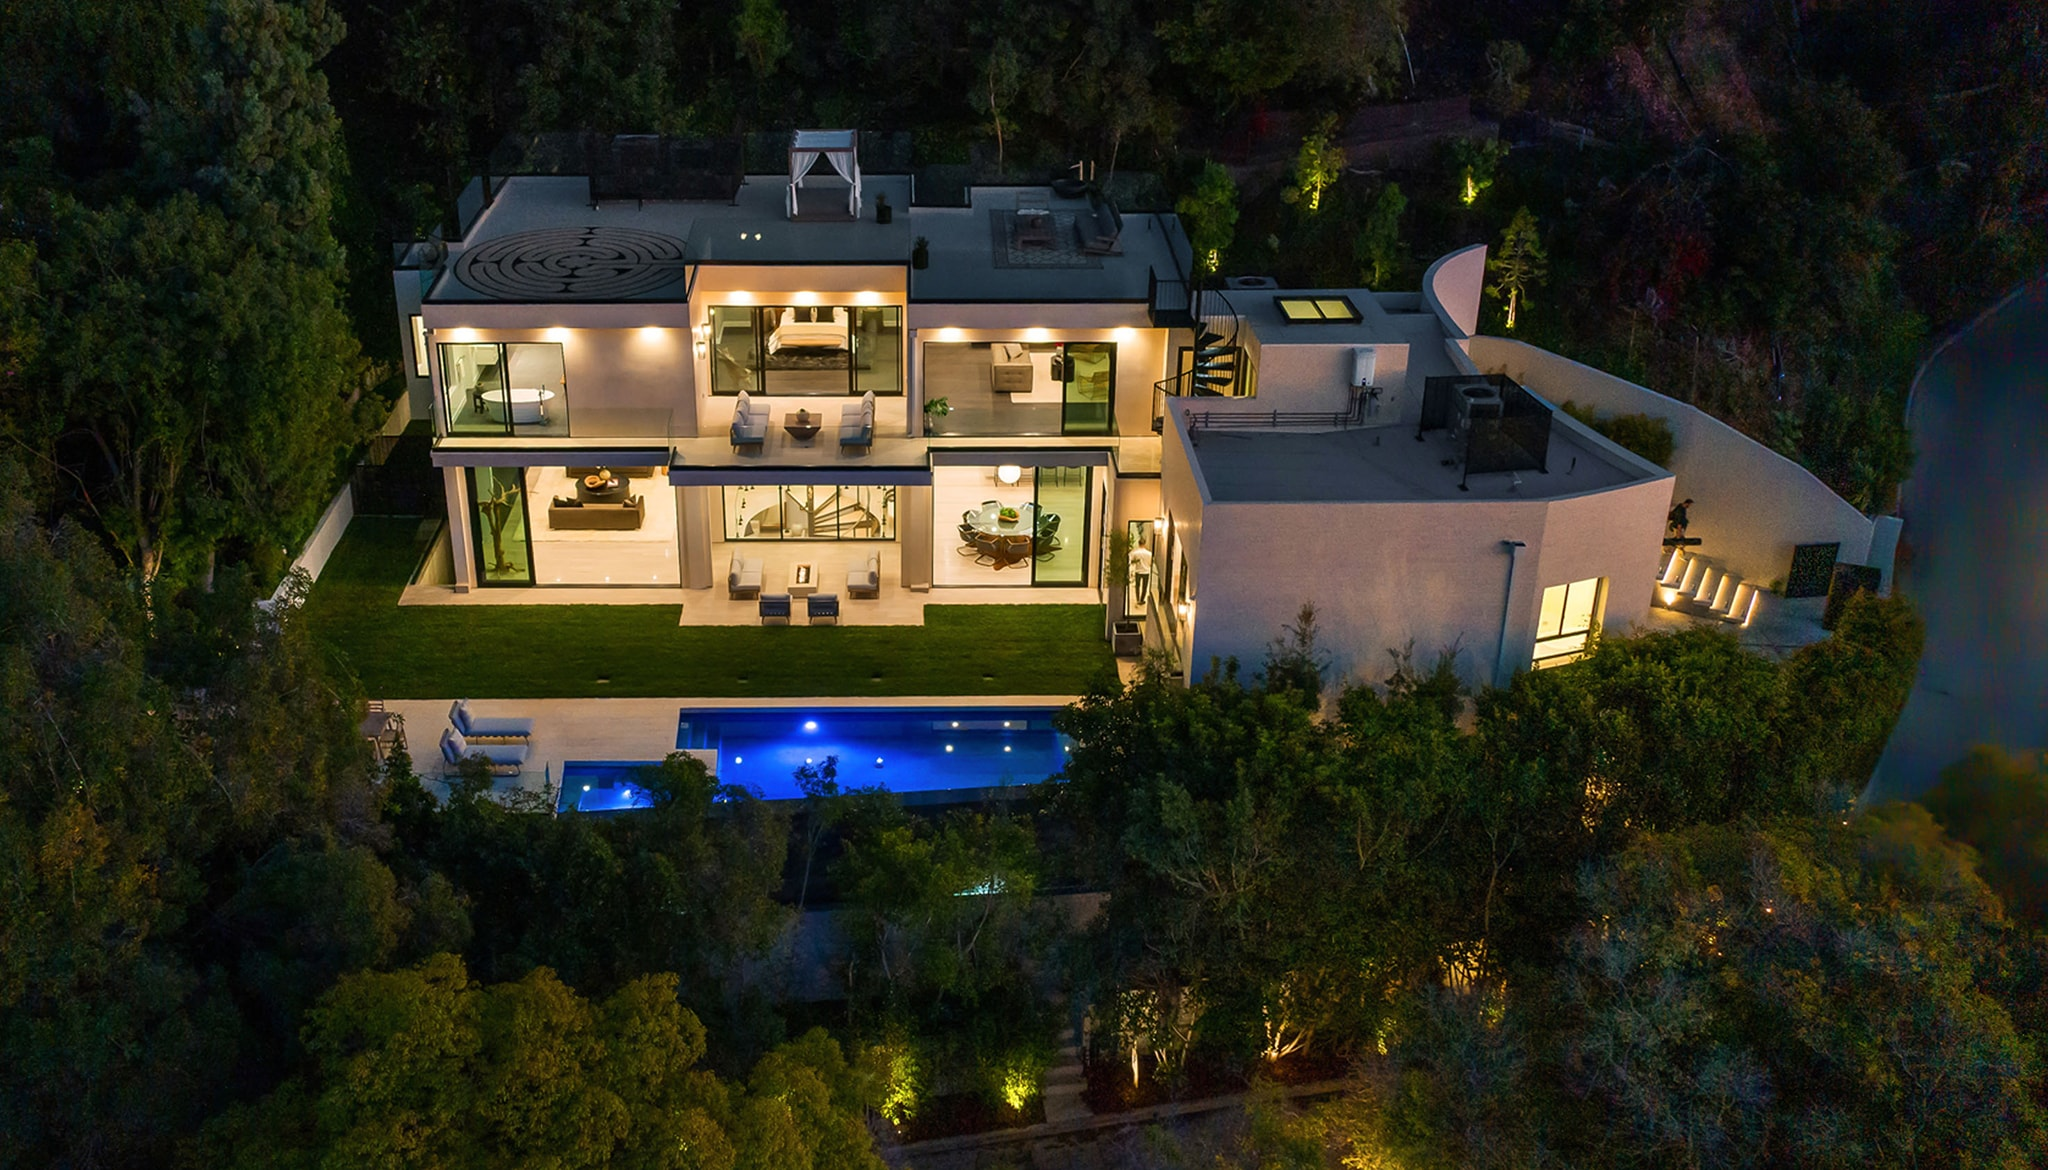 Brooklyn Beckham and fiancée Nicola Peltz purchased their first home in Beverly Hills for $10.5 million